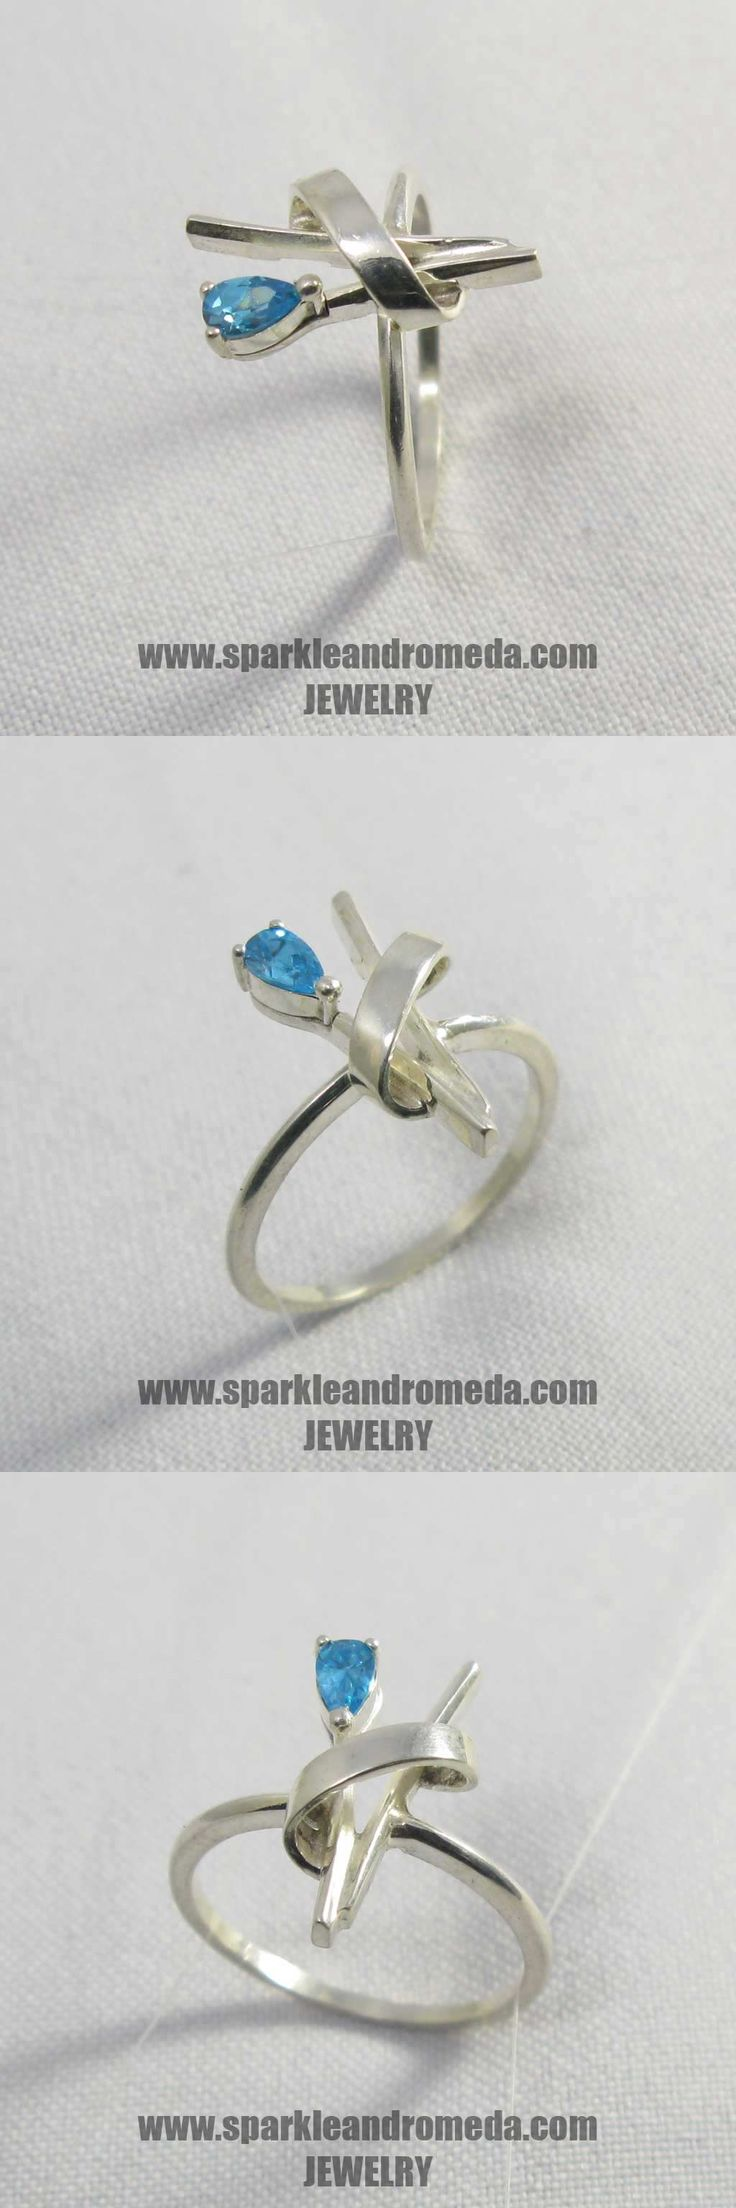 Sterling 925 silver ring with 1 pear 5×3 mm blue color cubic zirconia gemstones.